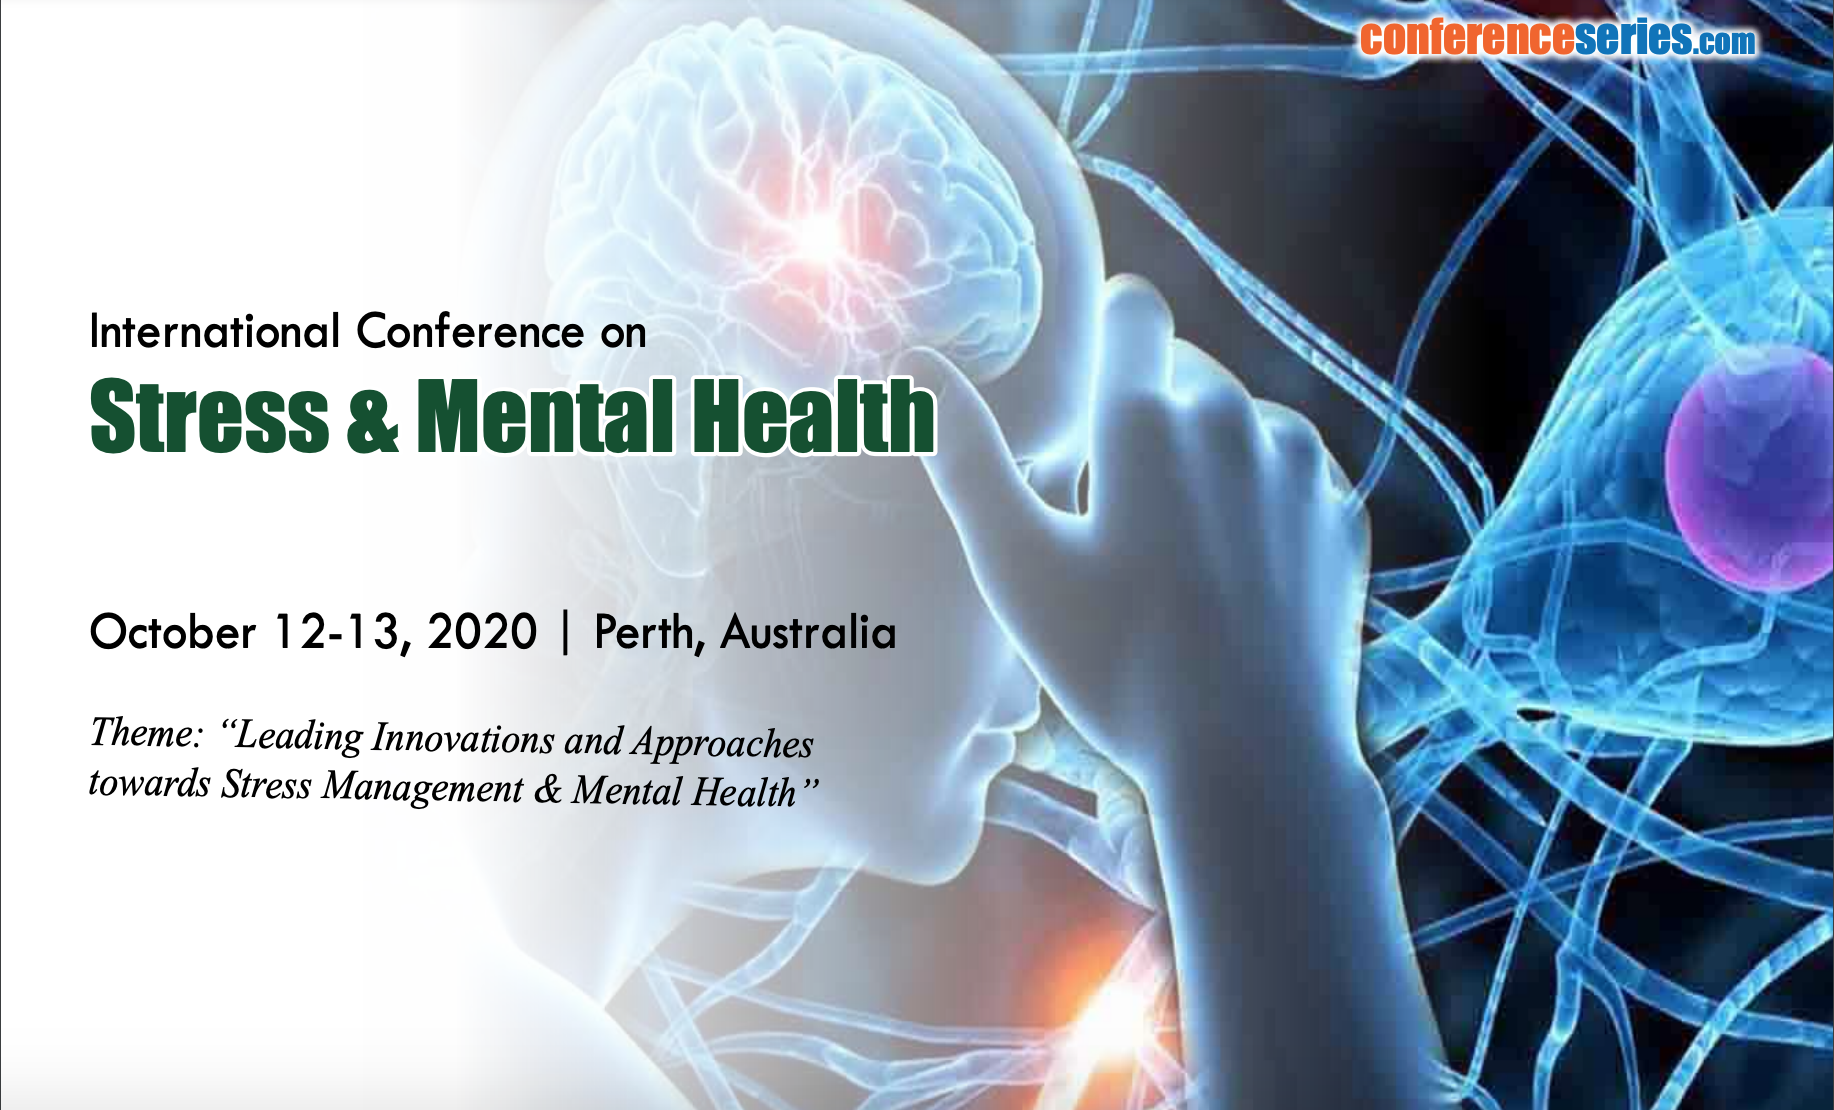 International Conference on Stress & Mental Health